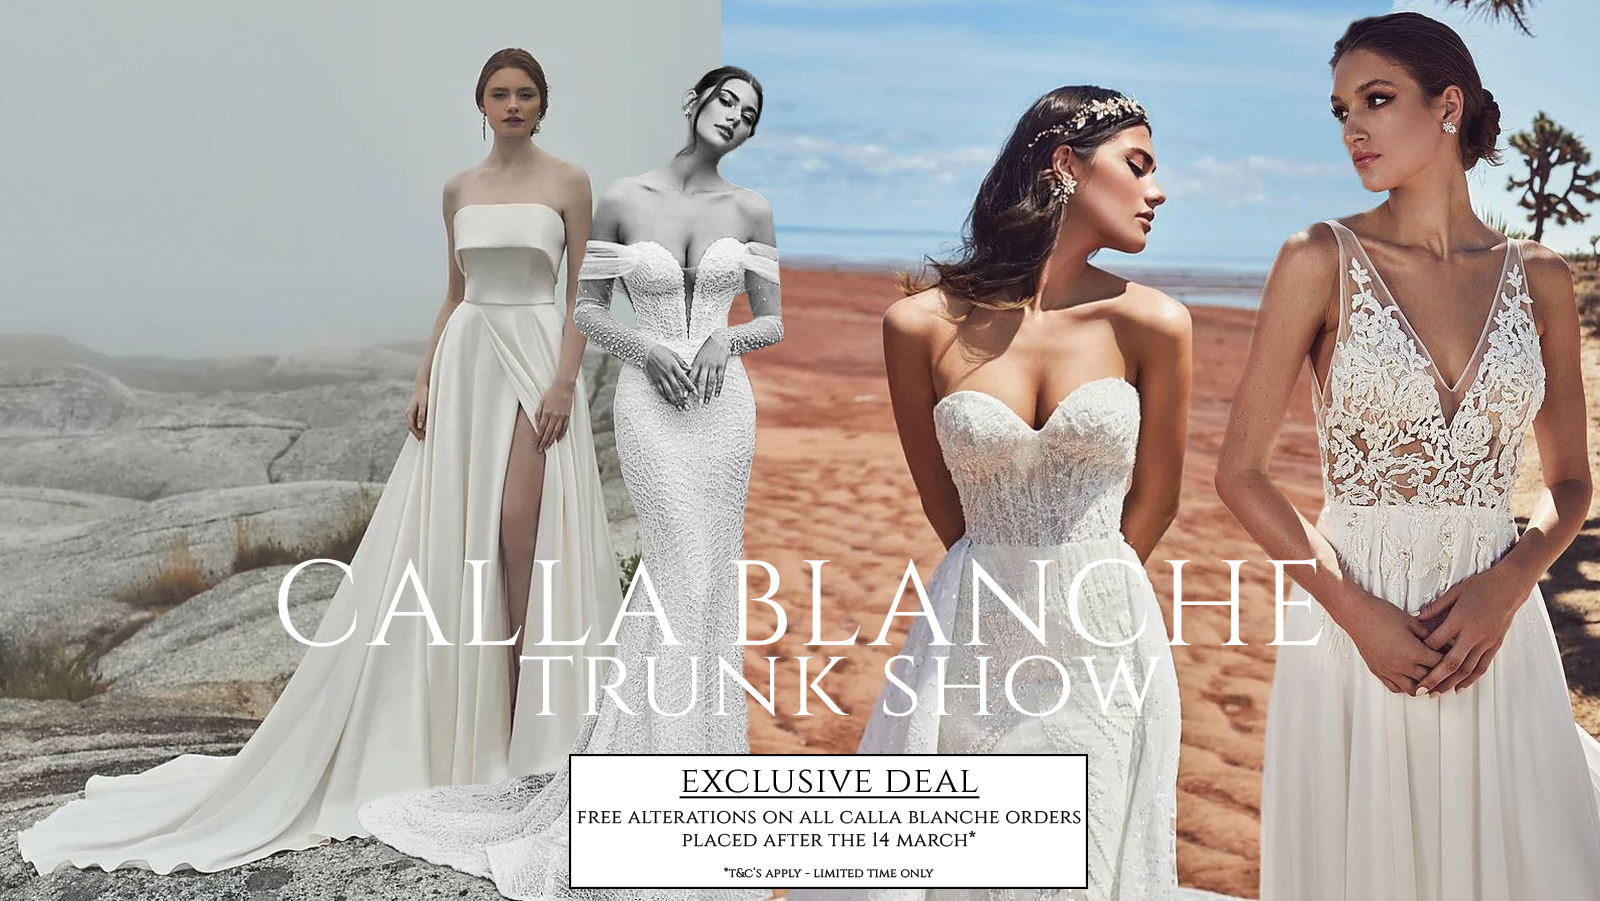 cb-trunk-show-banner-p2-.png